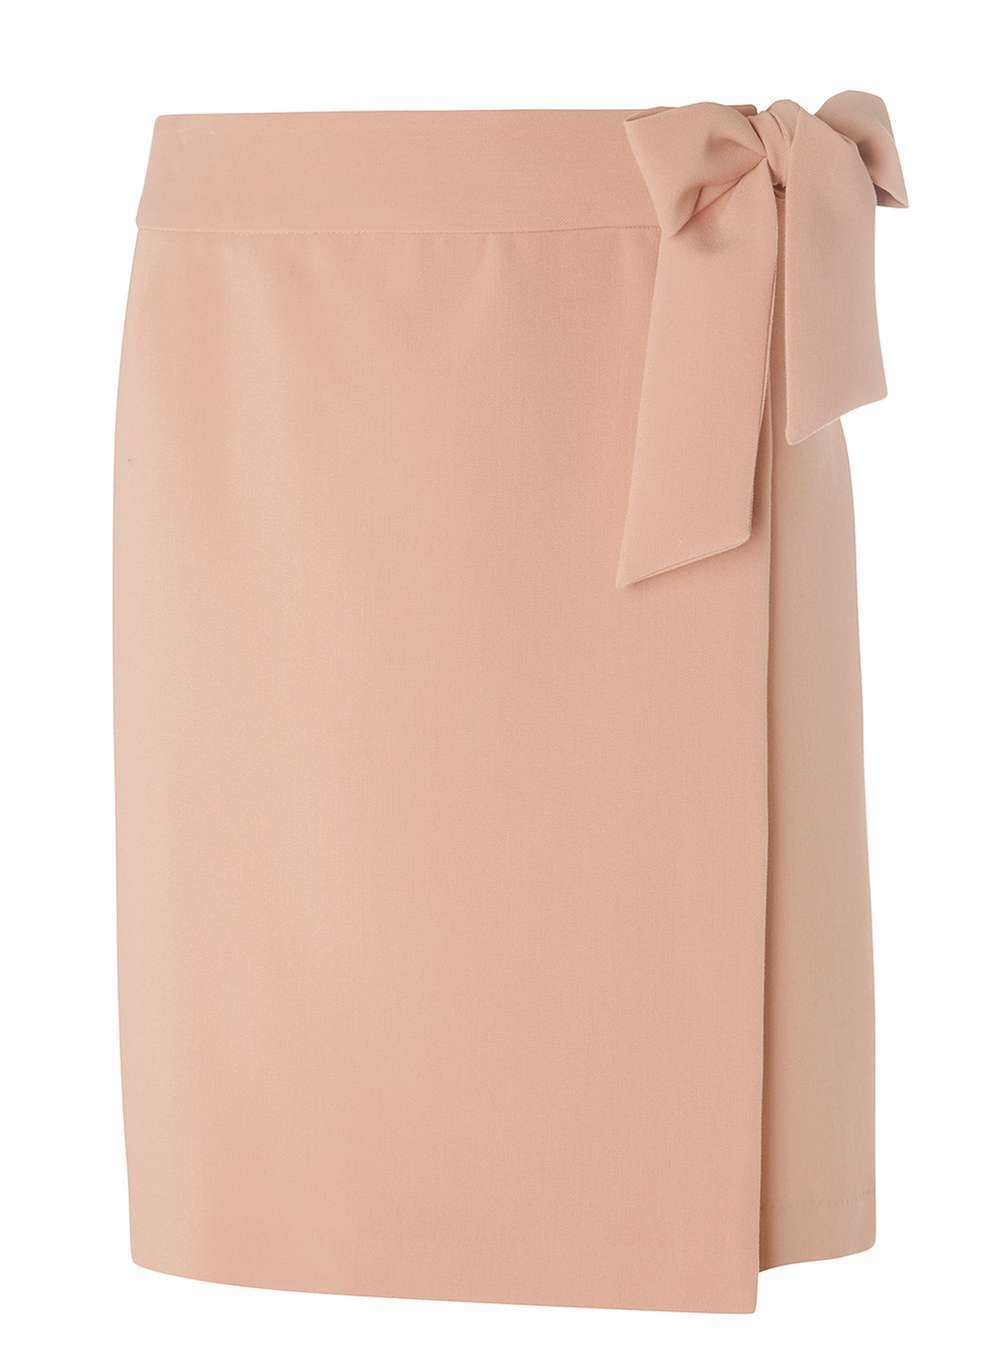 Womens Blush Tie Front Skirt Brown - pattern: plain; style: wrap/faux wrap; waist detail: belted waist/tie at waist/drawstring; waist: mid/regular rise; predominant colour: blush; occasions: work, occasion; length: just above the knee; fibres: polyester/polyamide - stretch; fit: straight cut; pattern type: fabric; texture group: other - light to midweight; season: a/w 2016